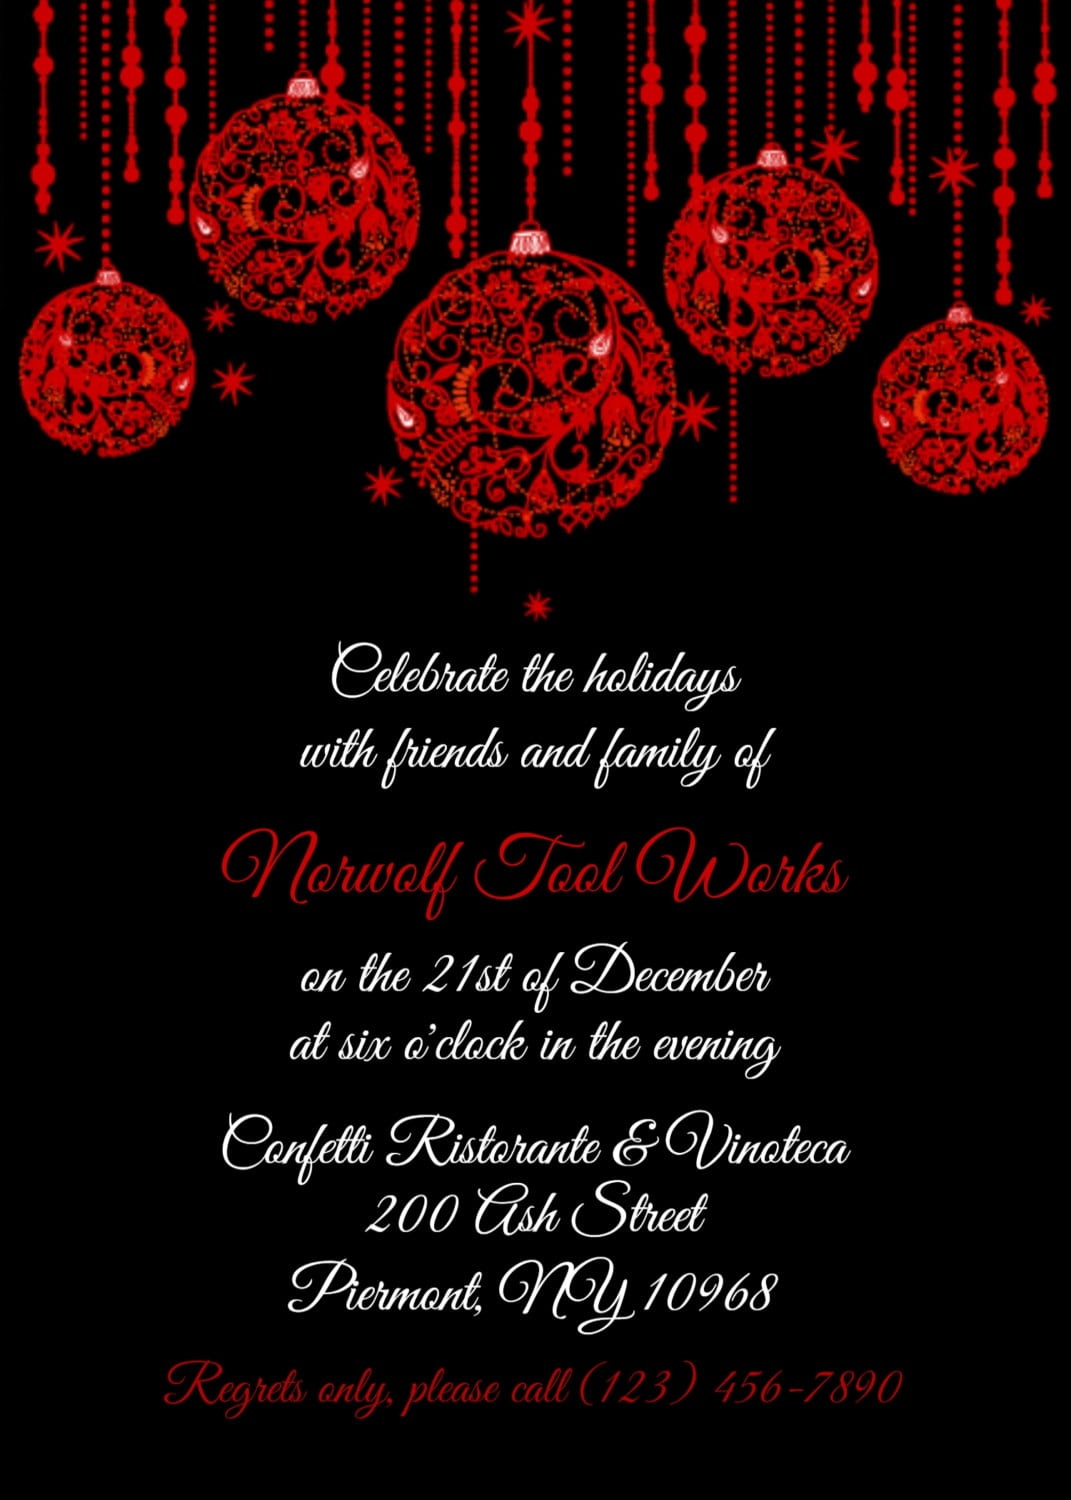 Staff Party Invitations For Christmas – Fun For Christmas